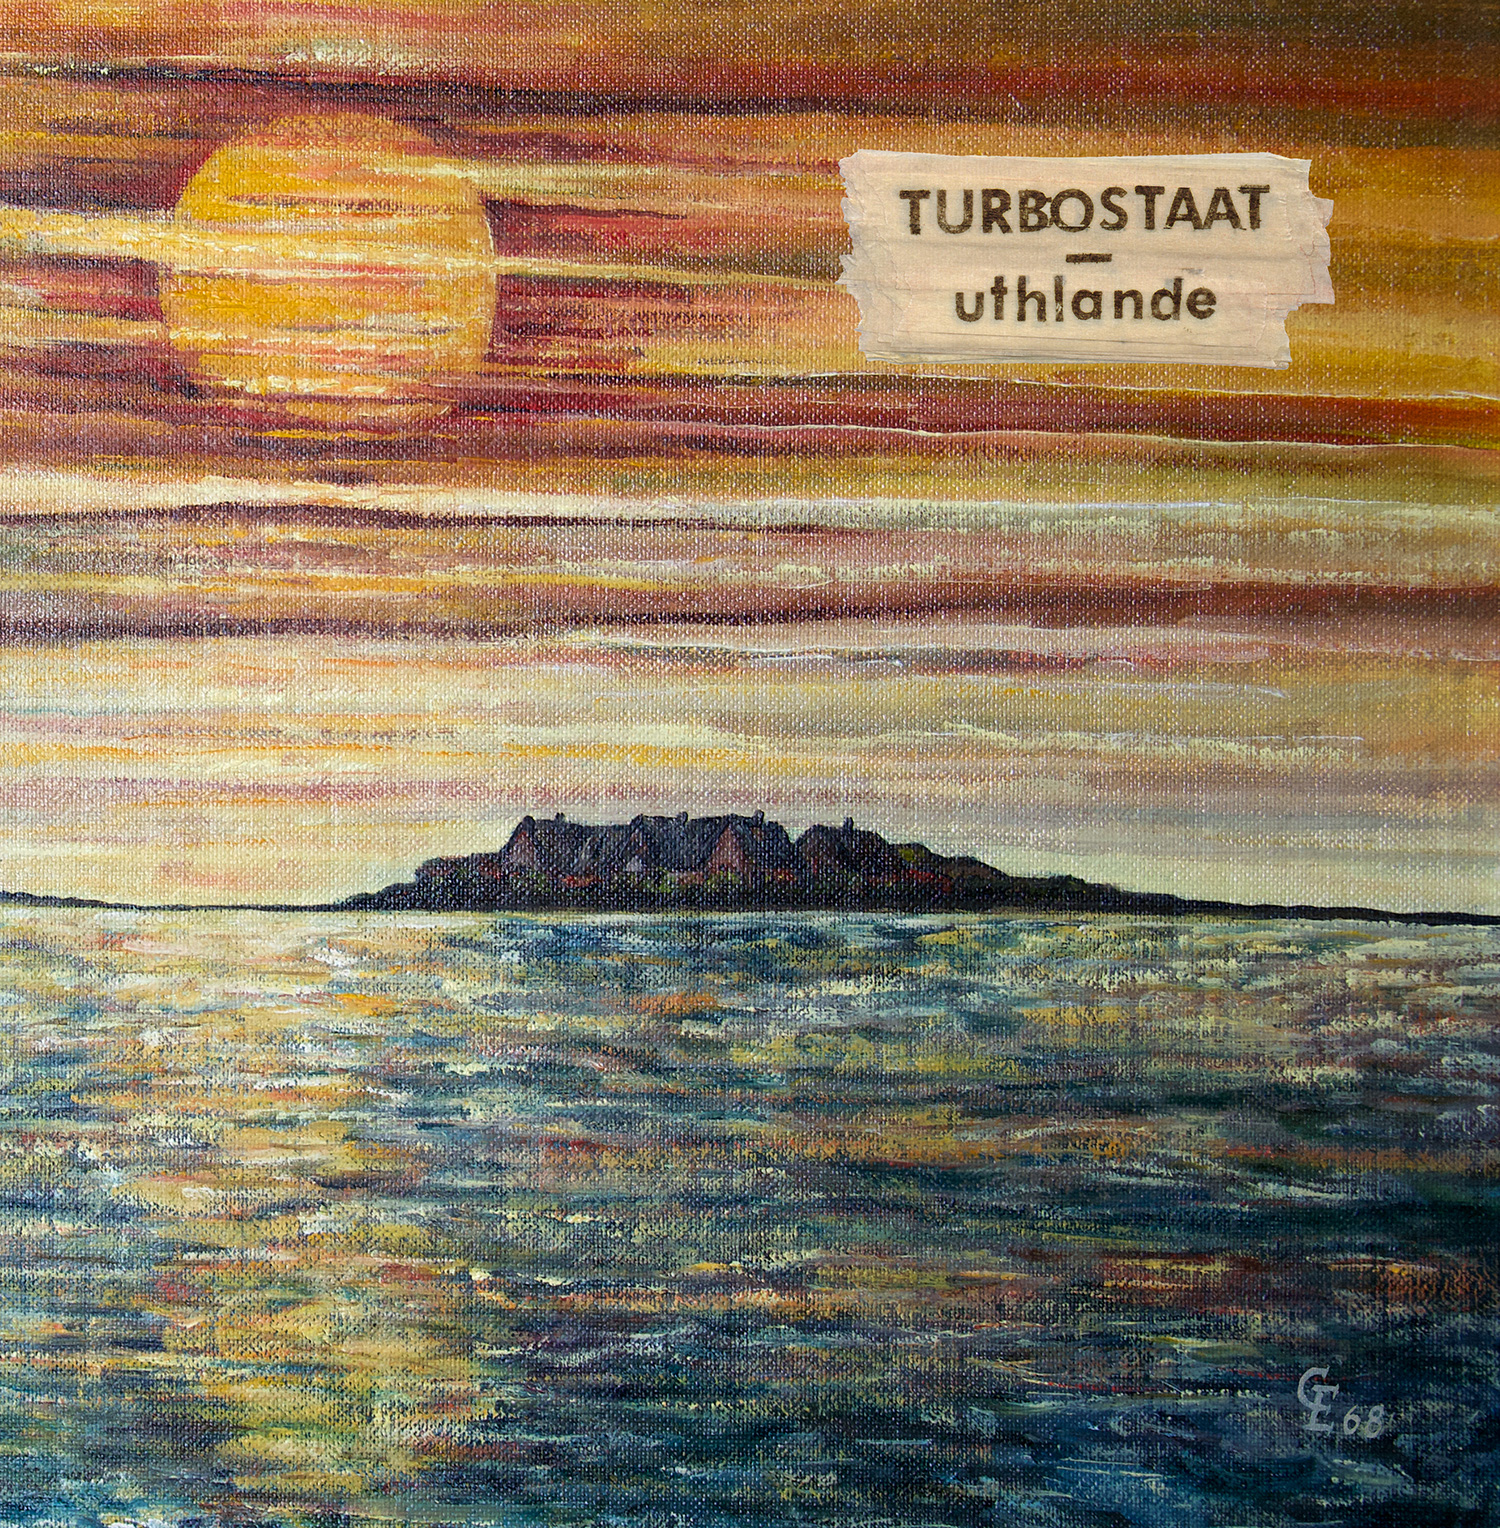 Turbostaat Uthlande LP